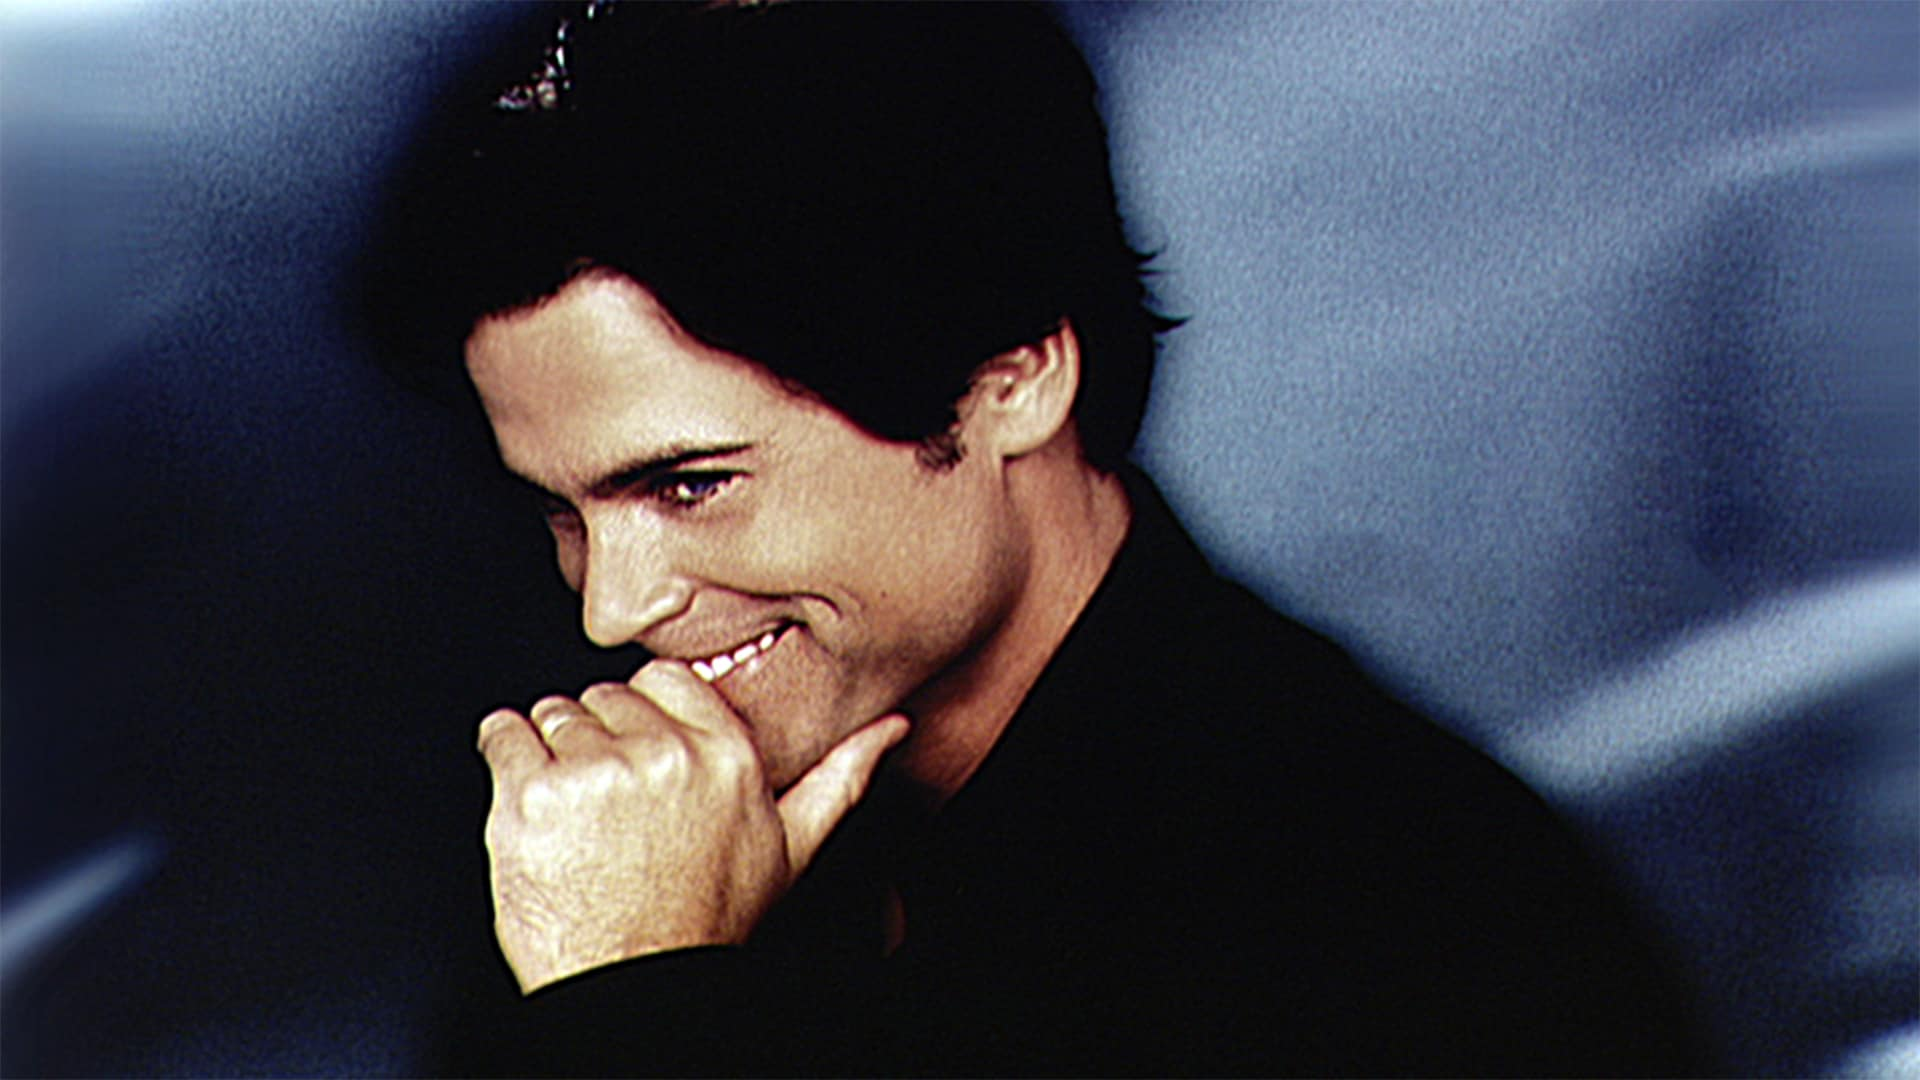 Rob Lowe: October 7, 2000